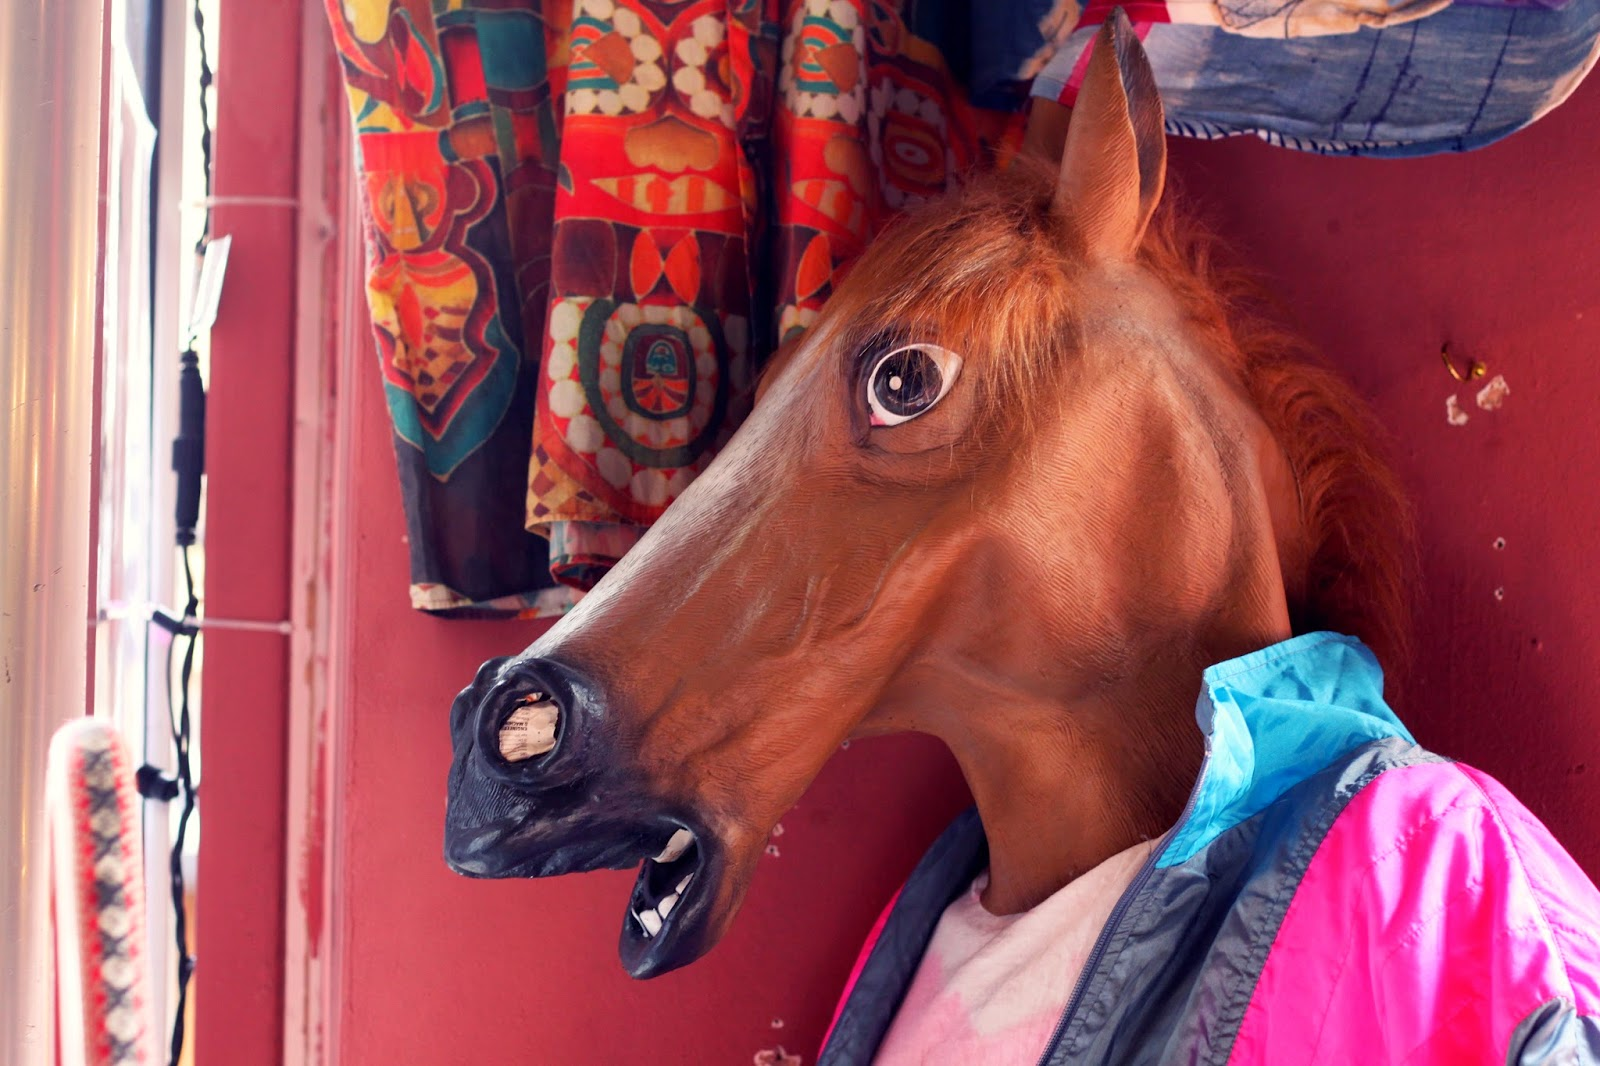 Vintage store Brick Lane, horse head, visual merchandising